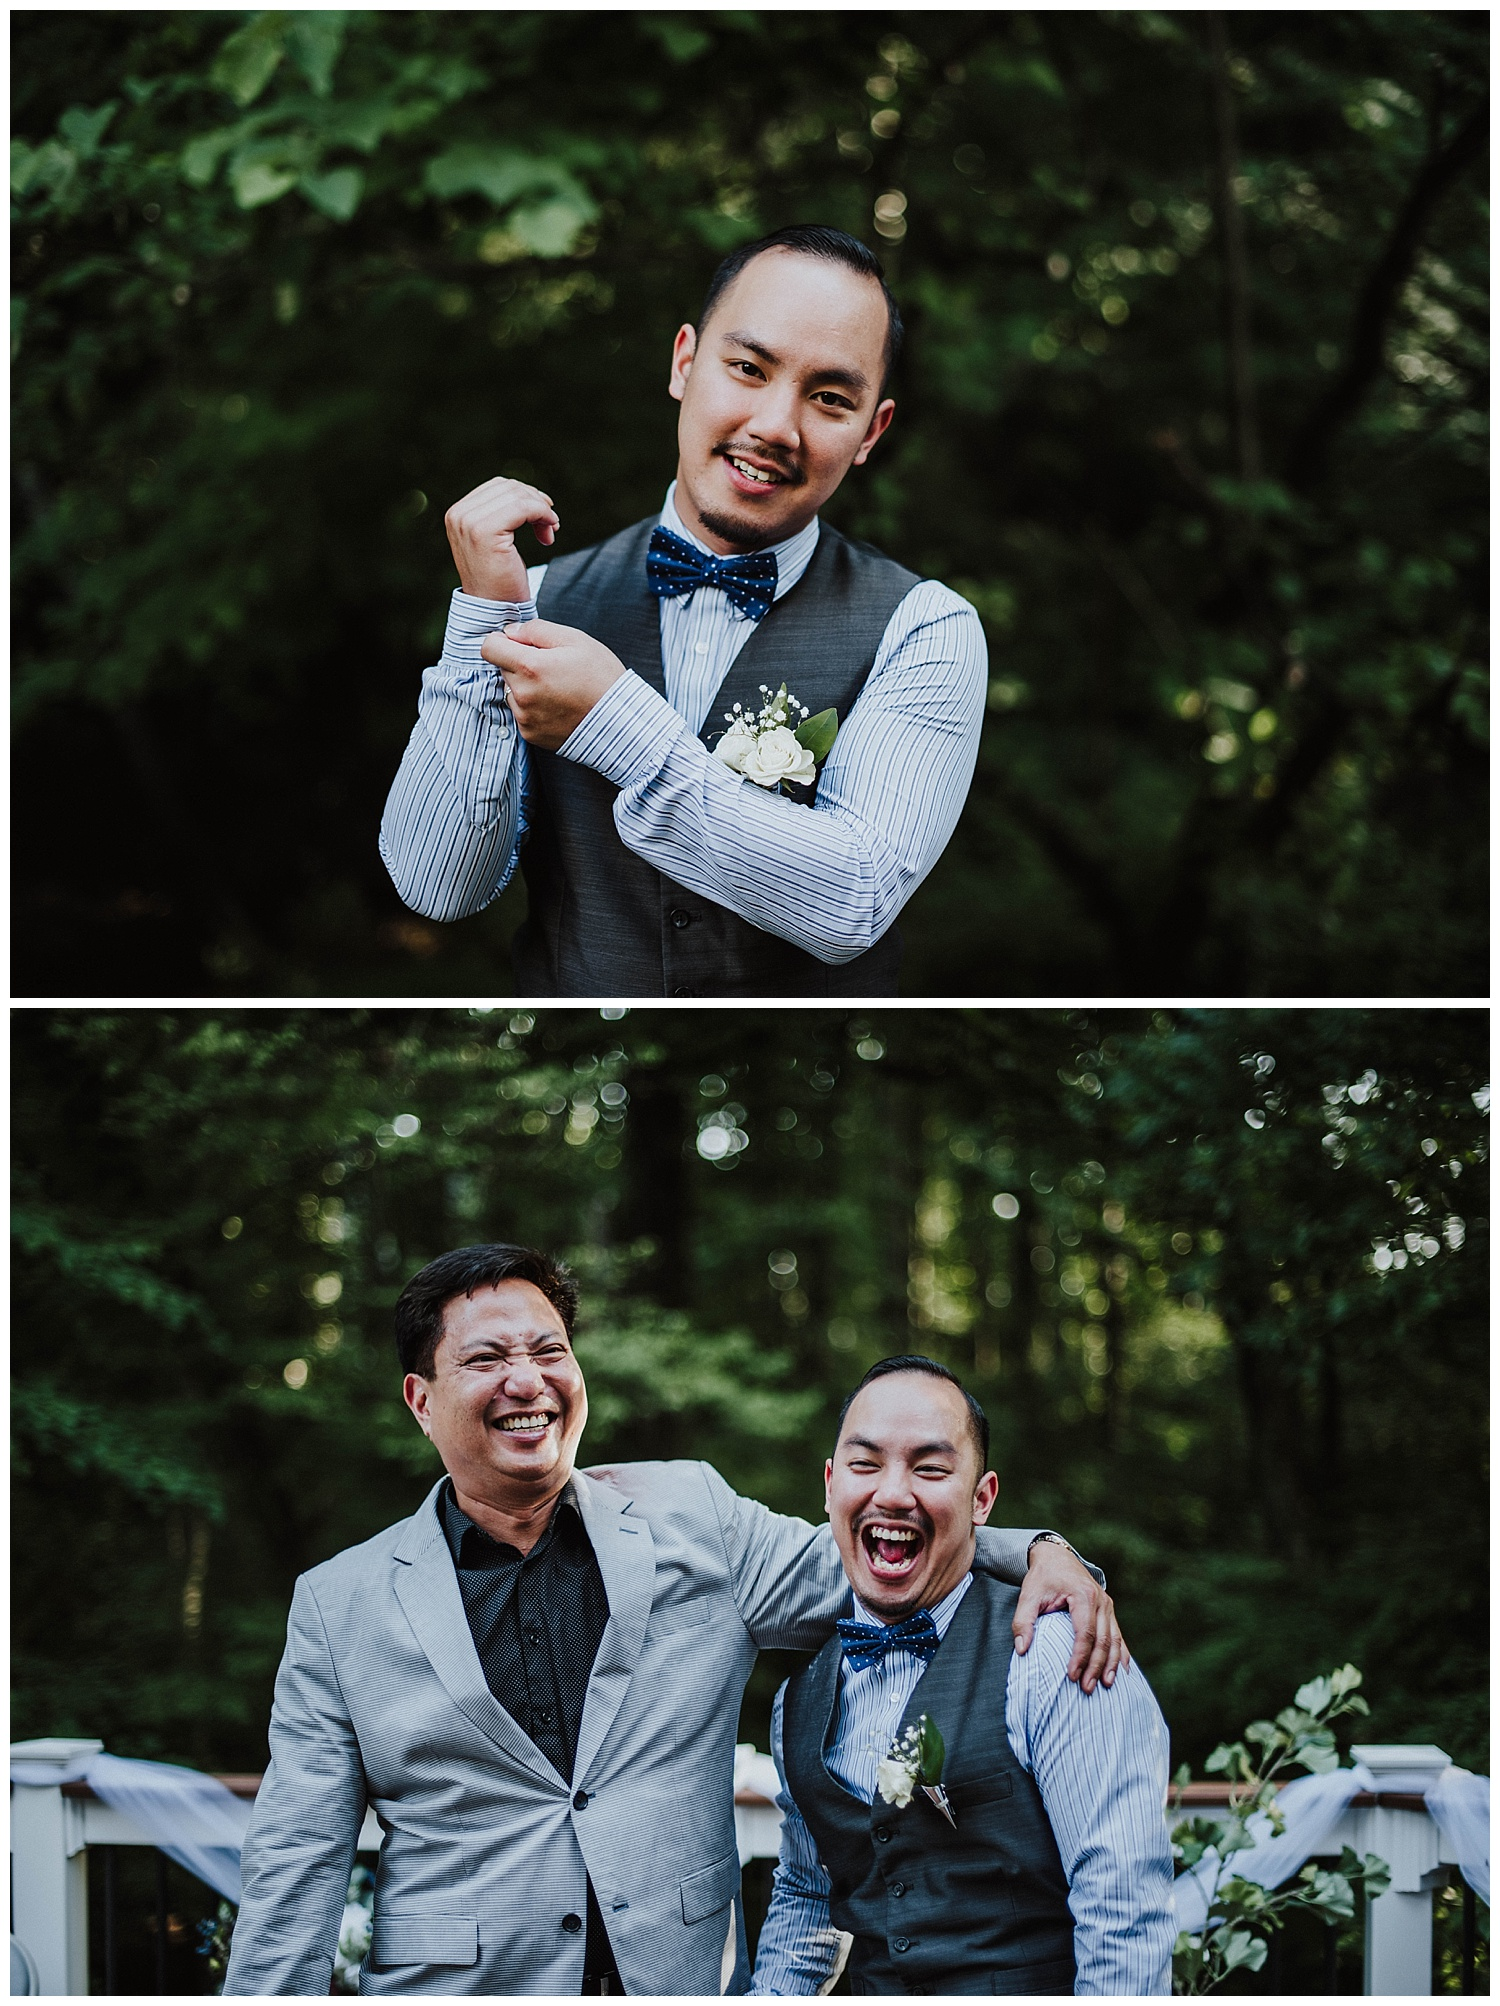 dad-and-groom-laughing-backyard-wedding-herndon.jpg